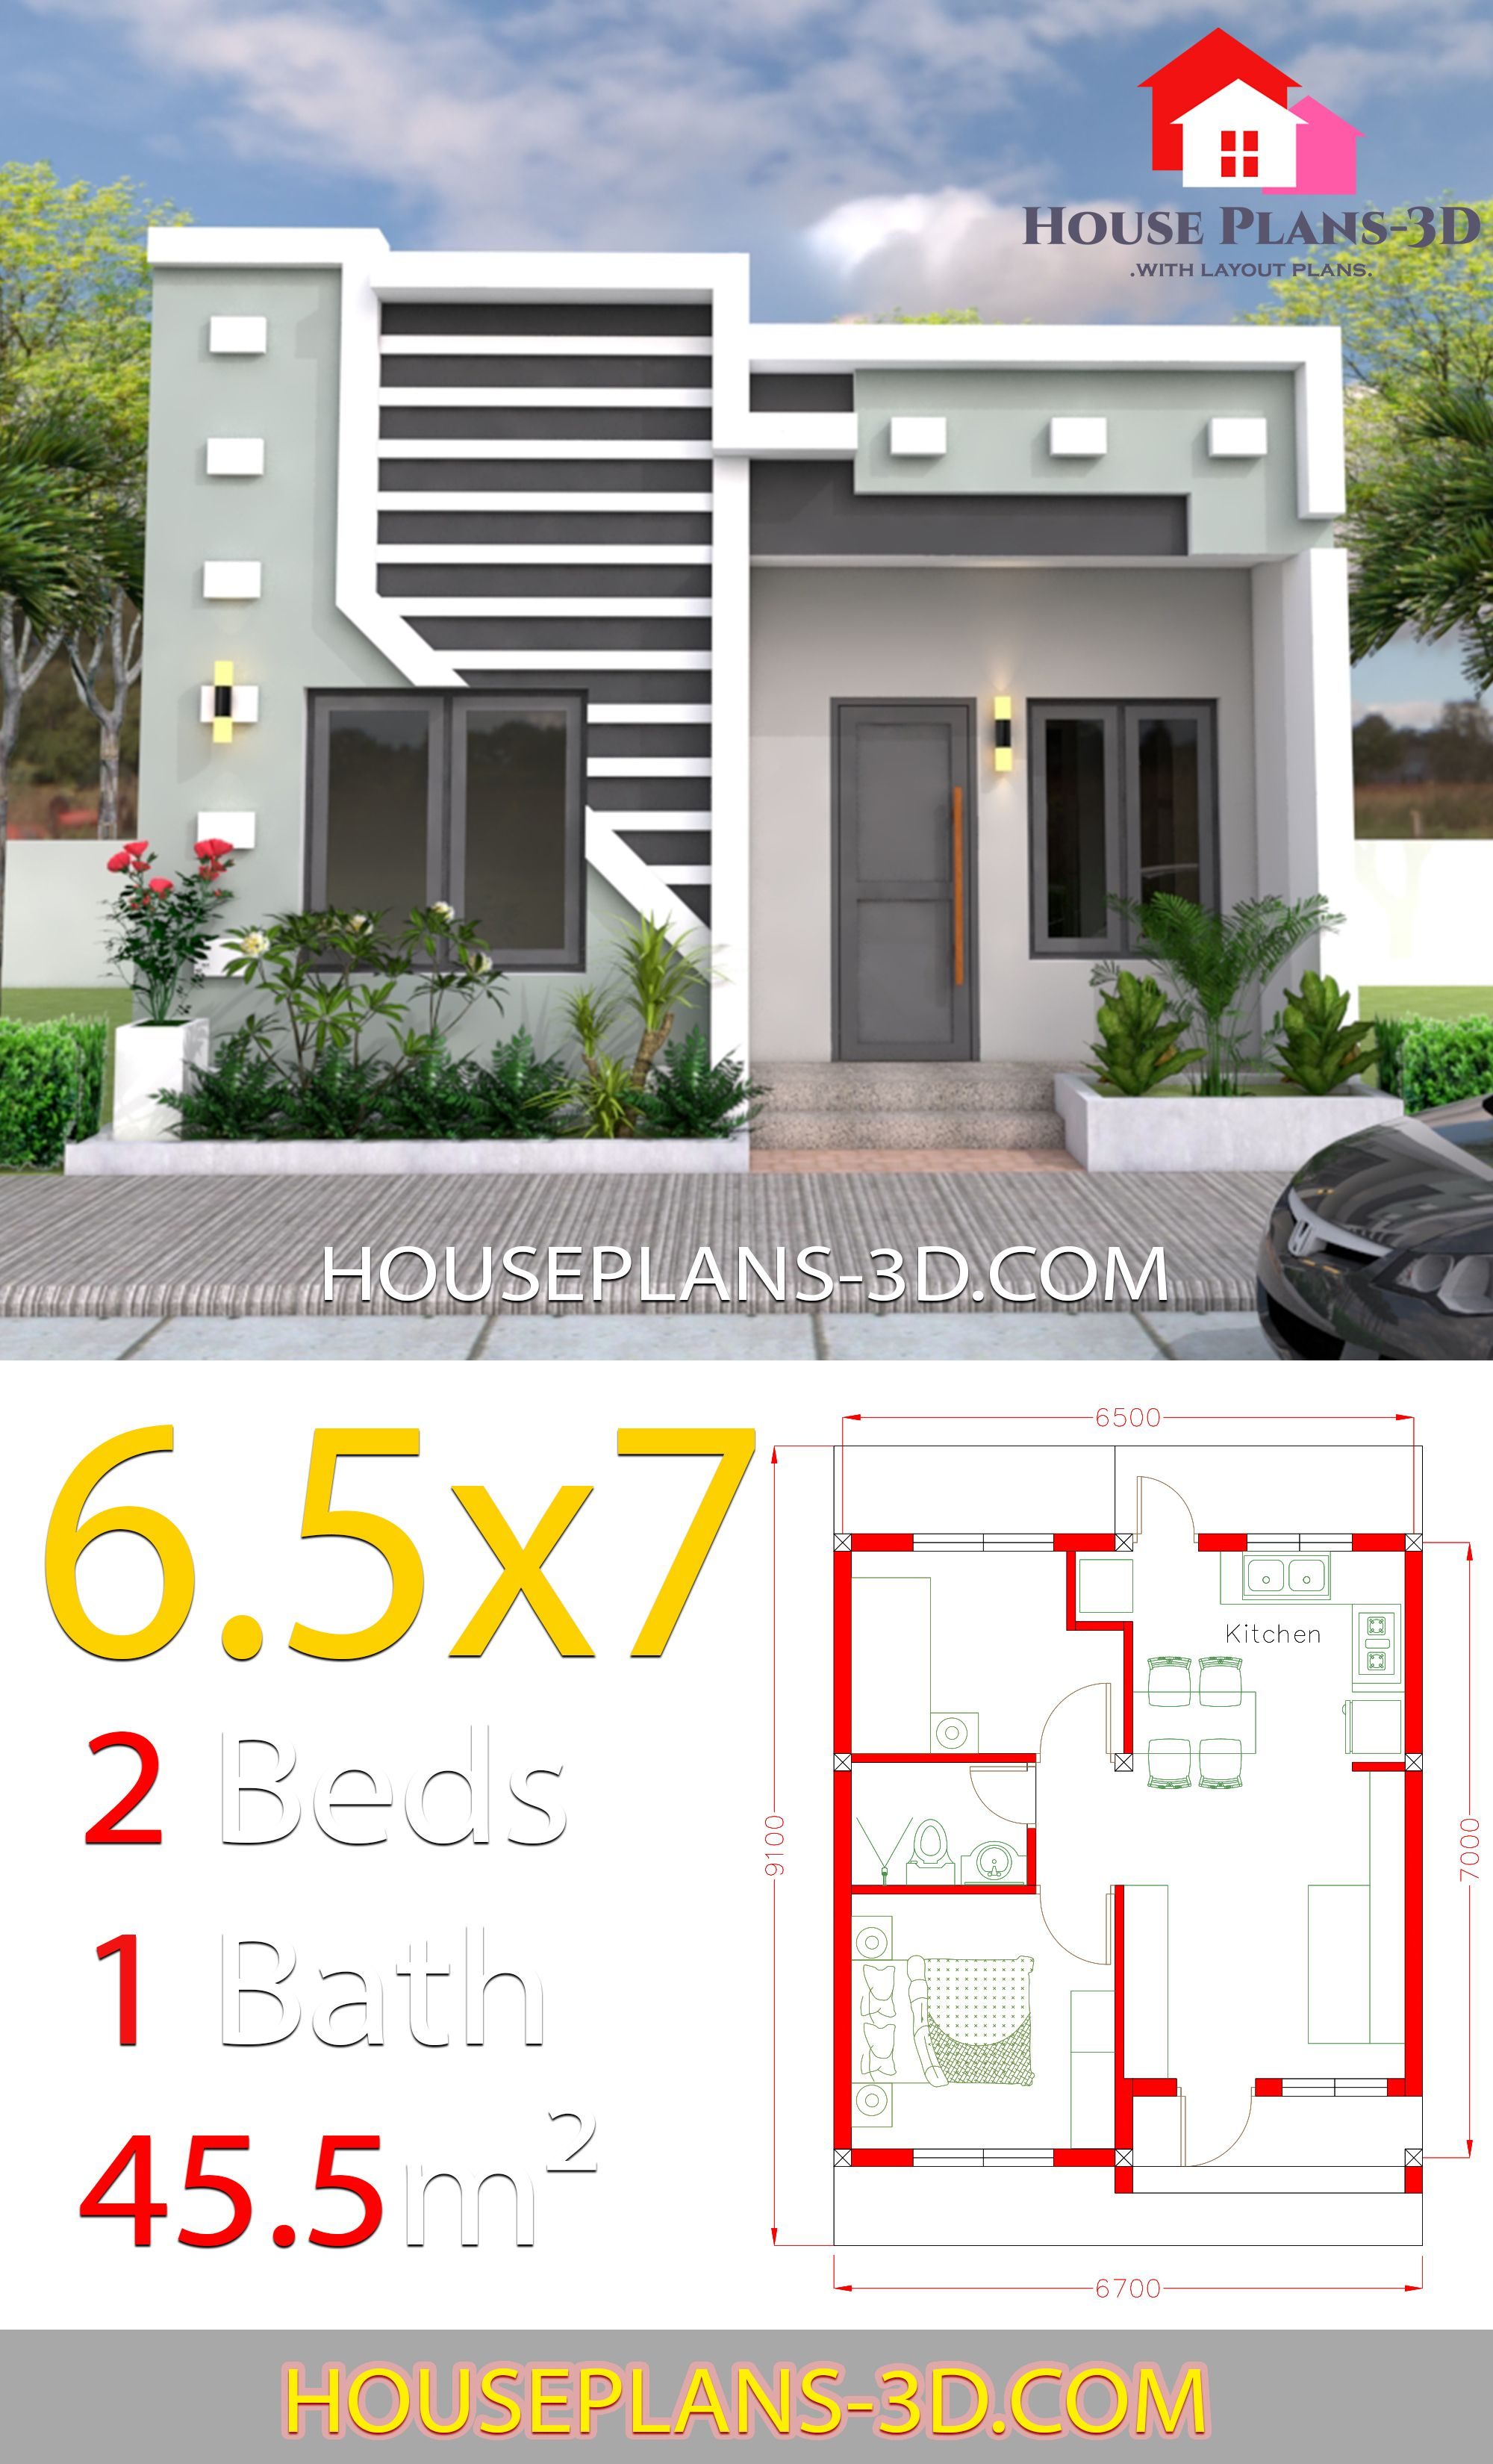 Small House Design 6.5x7 with 2 Bedrooms full plans in 2019 ... on top 10 small house plans, american small house plans, small craftsman house plans, stunning small house plans, special small house plans, exceptional small house plans, school small house plans, small guest house floor plans, country house plans, unique small house plans, narrow lot house plans, modern farm house floor plans, comfortable small house plans, best small house plans, drawing small house plans, angle 3 car garage house plans, classic small house plans, ross chapin small house plans,